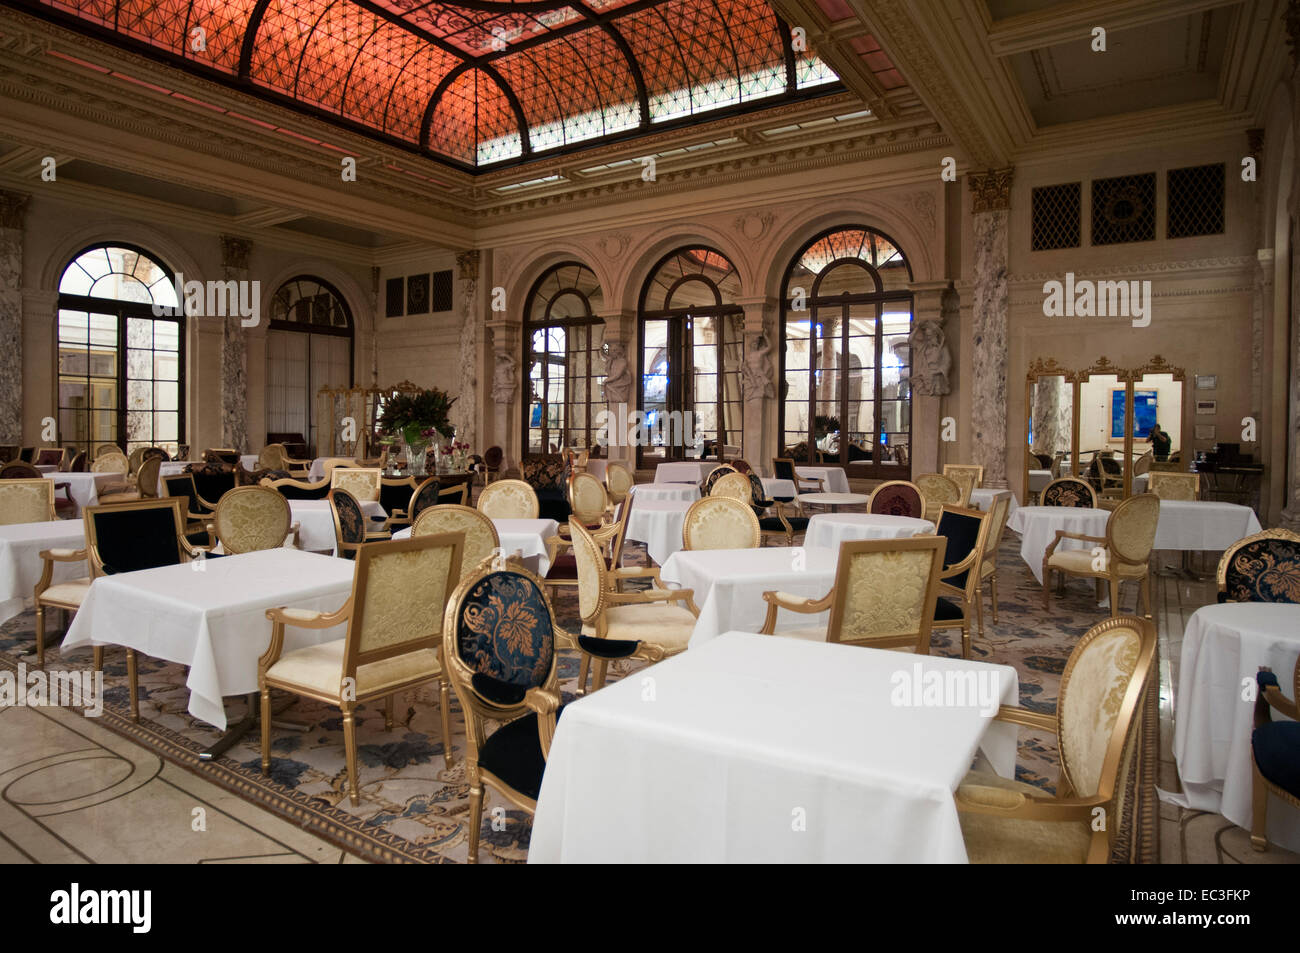 Restaurant in the plaza hotel new york usa the plaza hotel landmark 20 story luxury hotel near grand army plaza central park